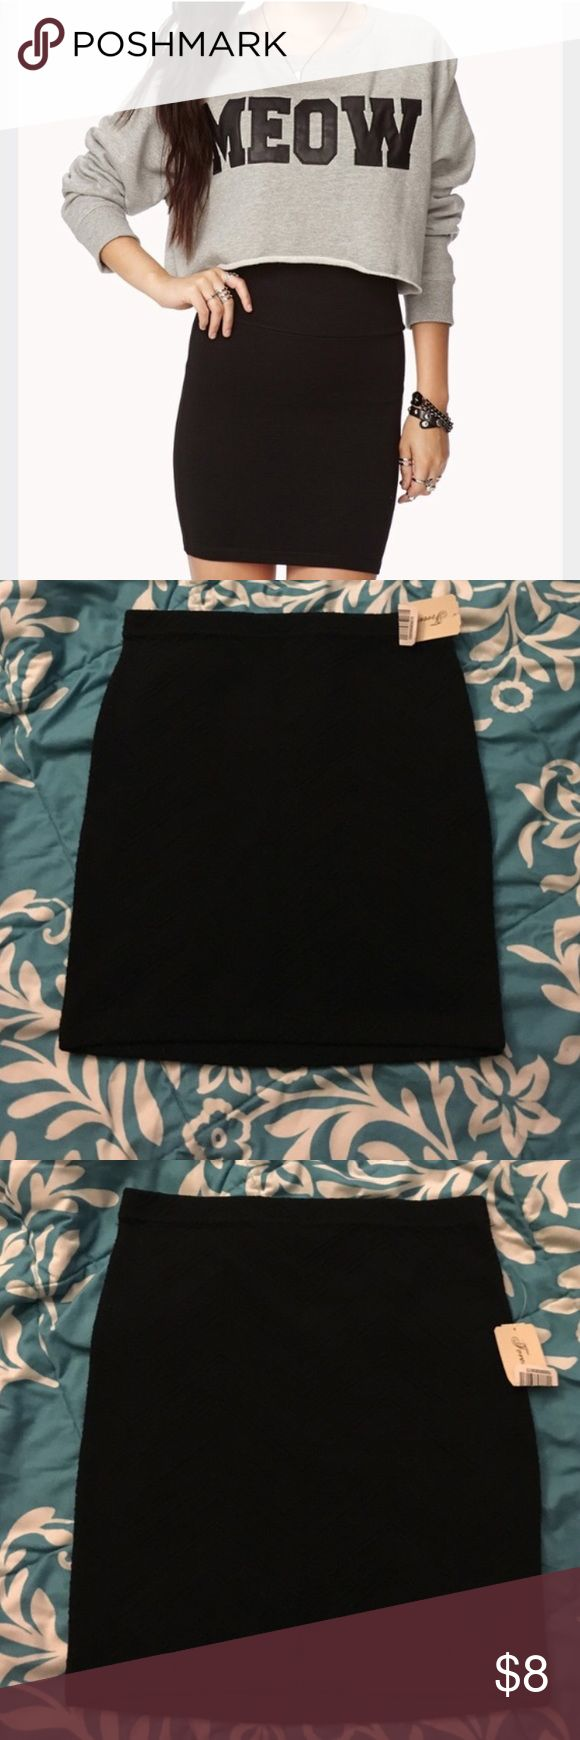 Black Skirt Brand new with tags, forever 21 black bodycon skirt. Perfect to pair with a tight top & heels for a night out! Forever 21 Skirts Mini